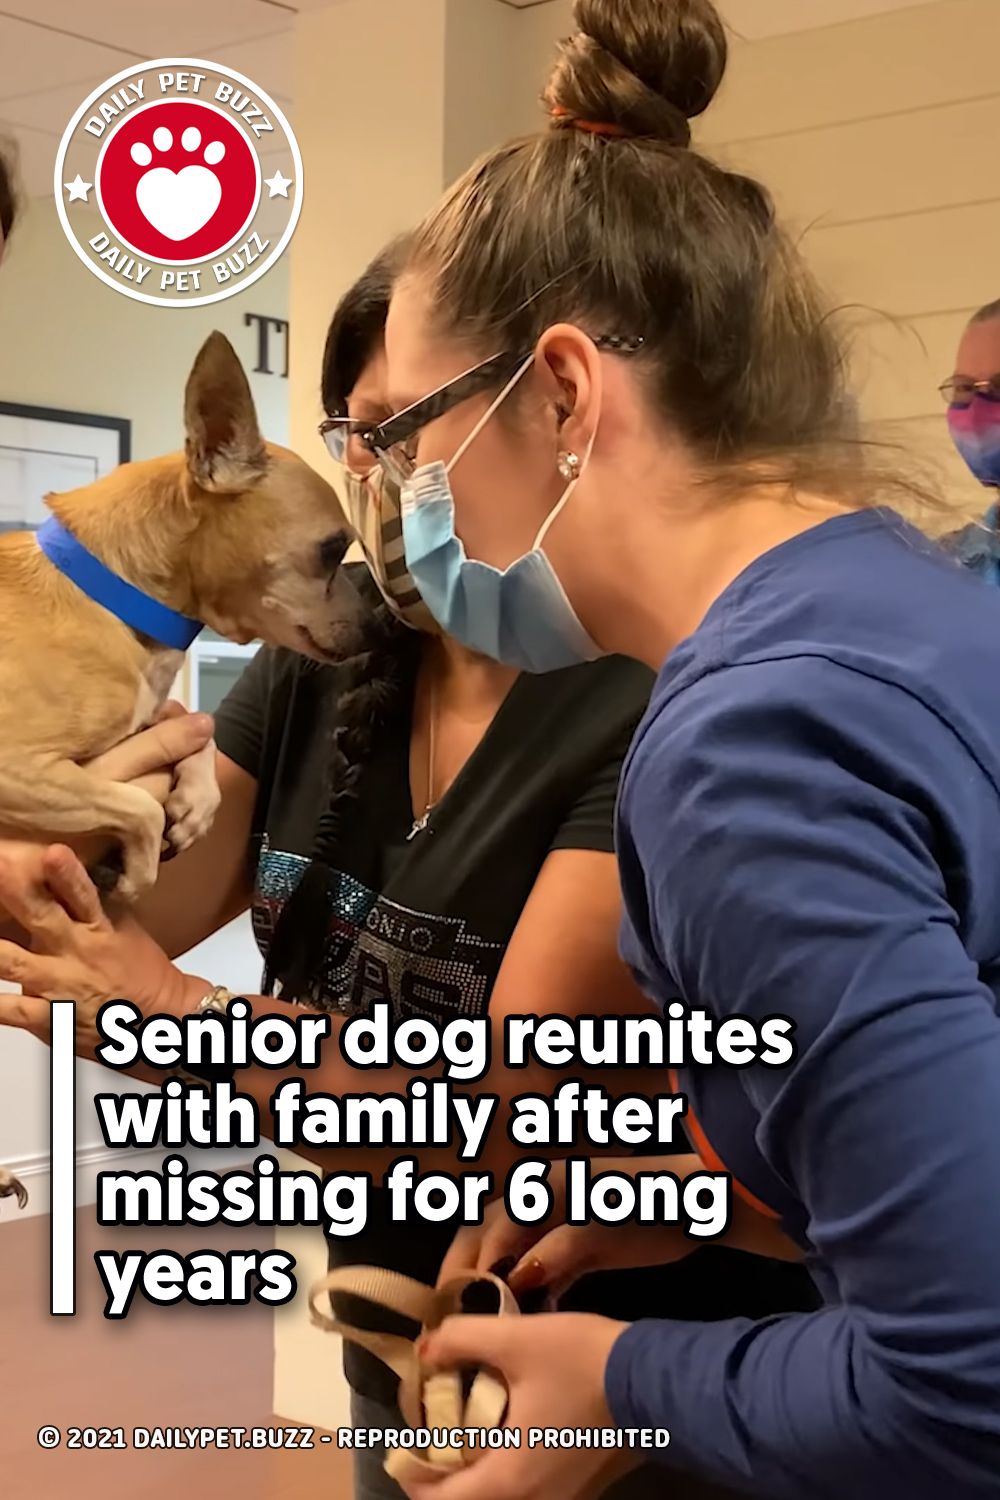 Senior dog reunites with family after missing for 6 long years